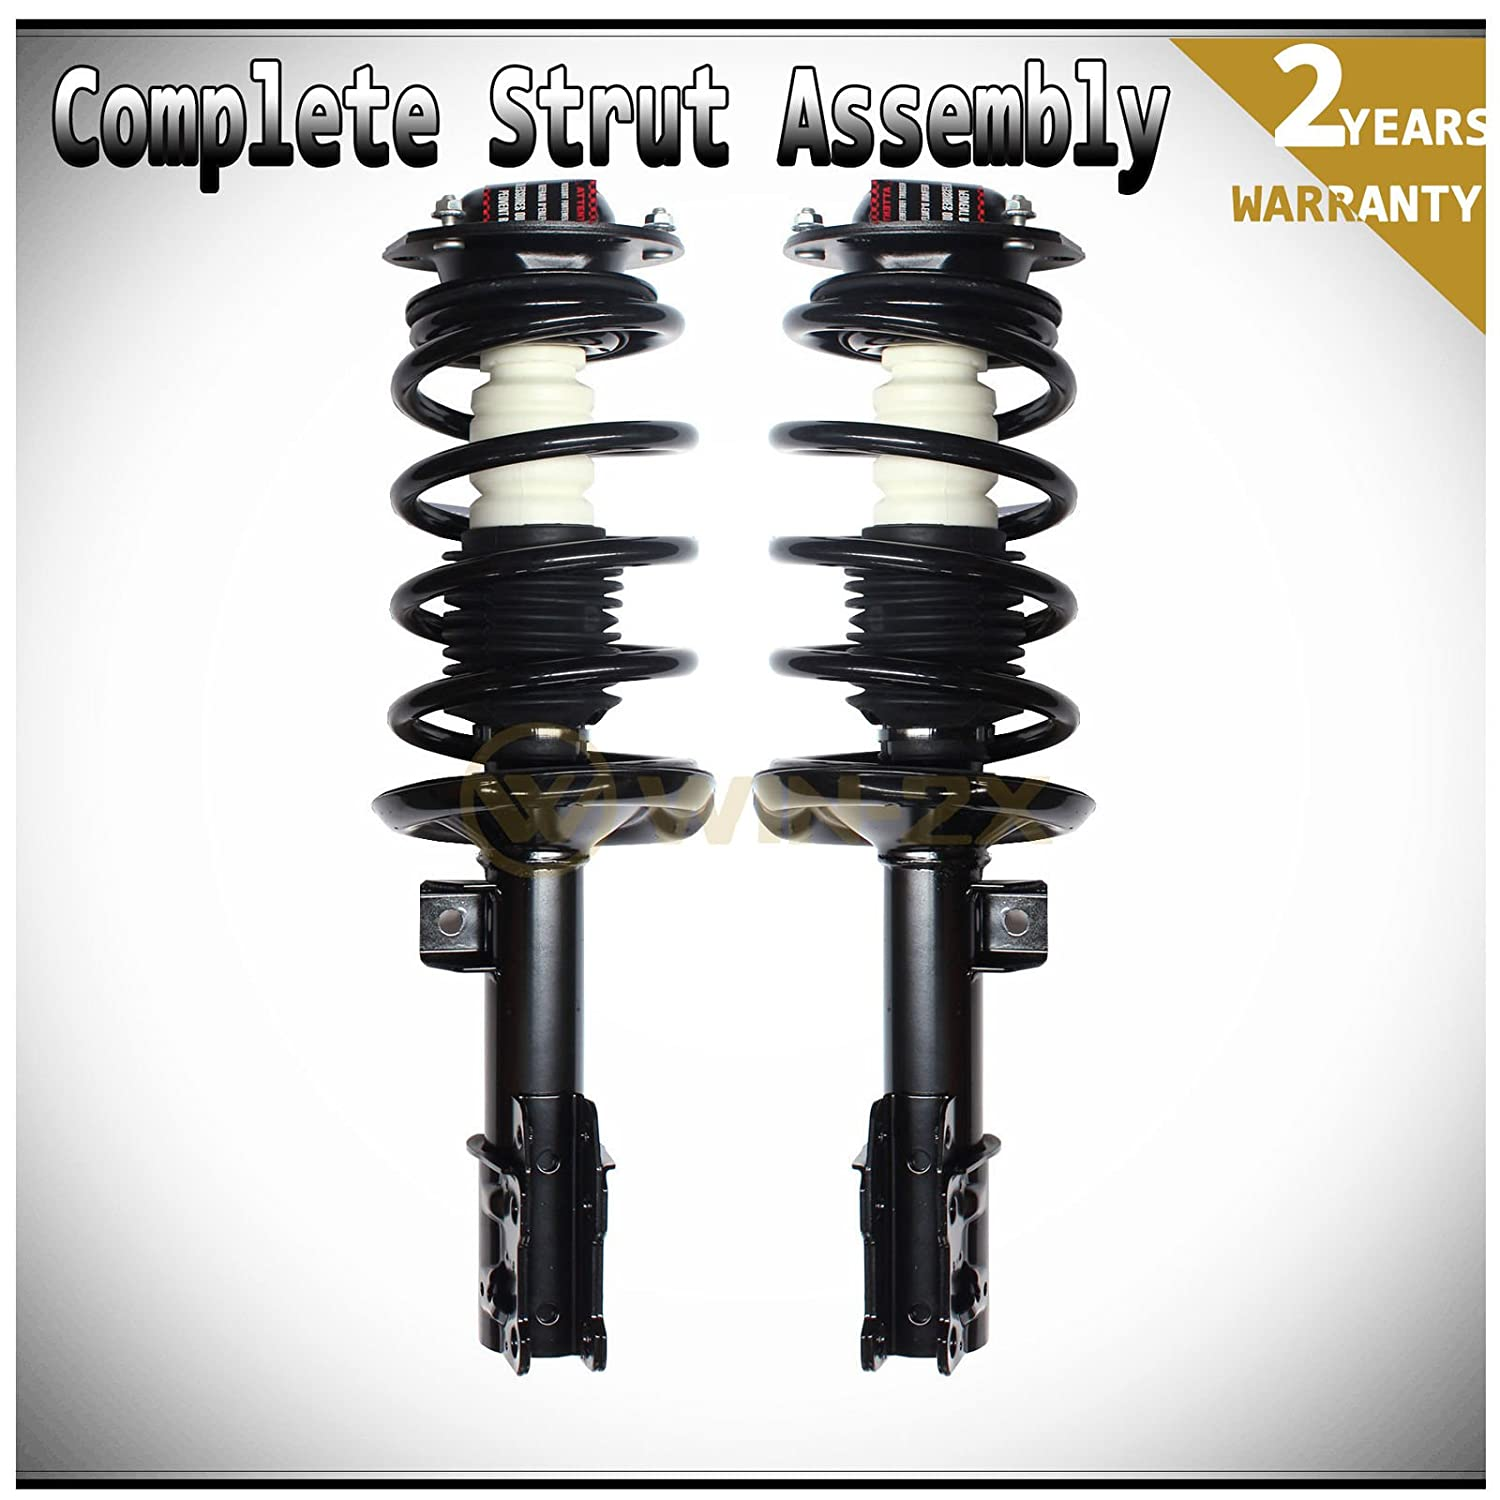 WIN-2X New 1pc Front Left Side Quick Complete Suspension Shock Strut /& Coil Spring Assembly Kit Fit 04-12 Chevy Malibu//Malibu Maxx 05-10 Pontiac G6 07-09 Saturn Aura